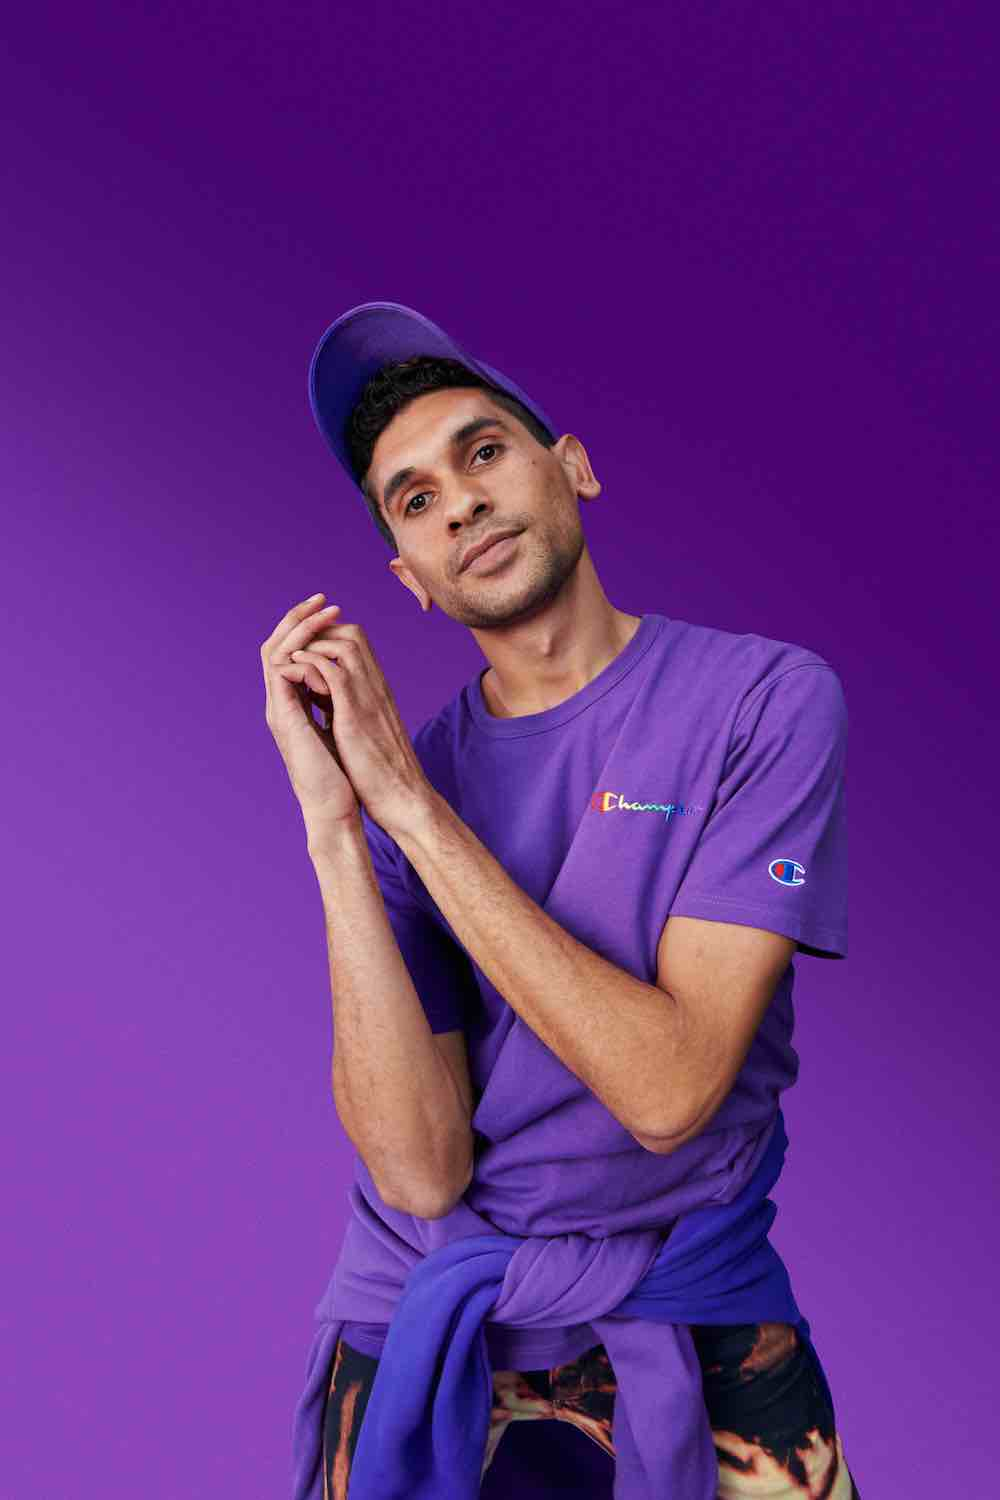 Champion launches new Pride campaign and partnership via TABOO, Sissy Studios and PUSH